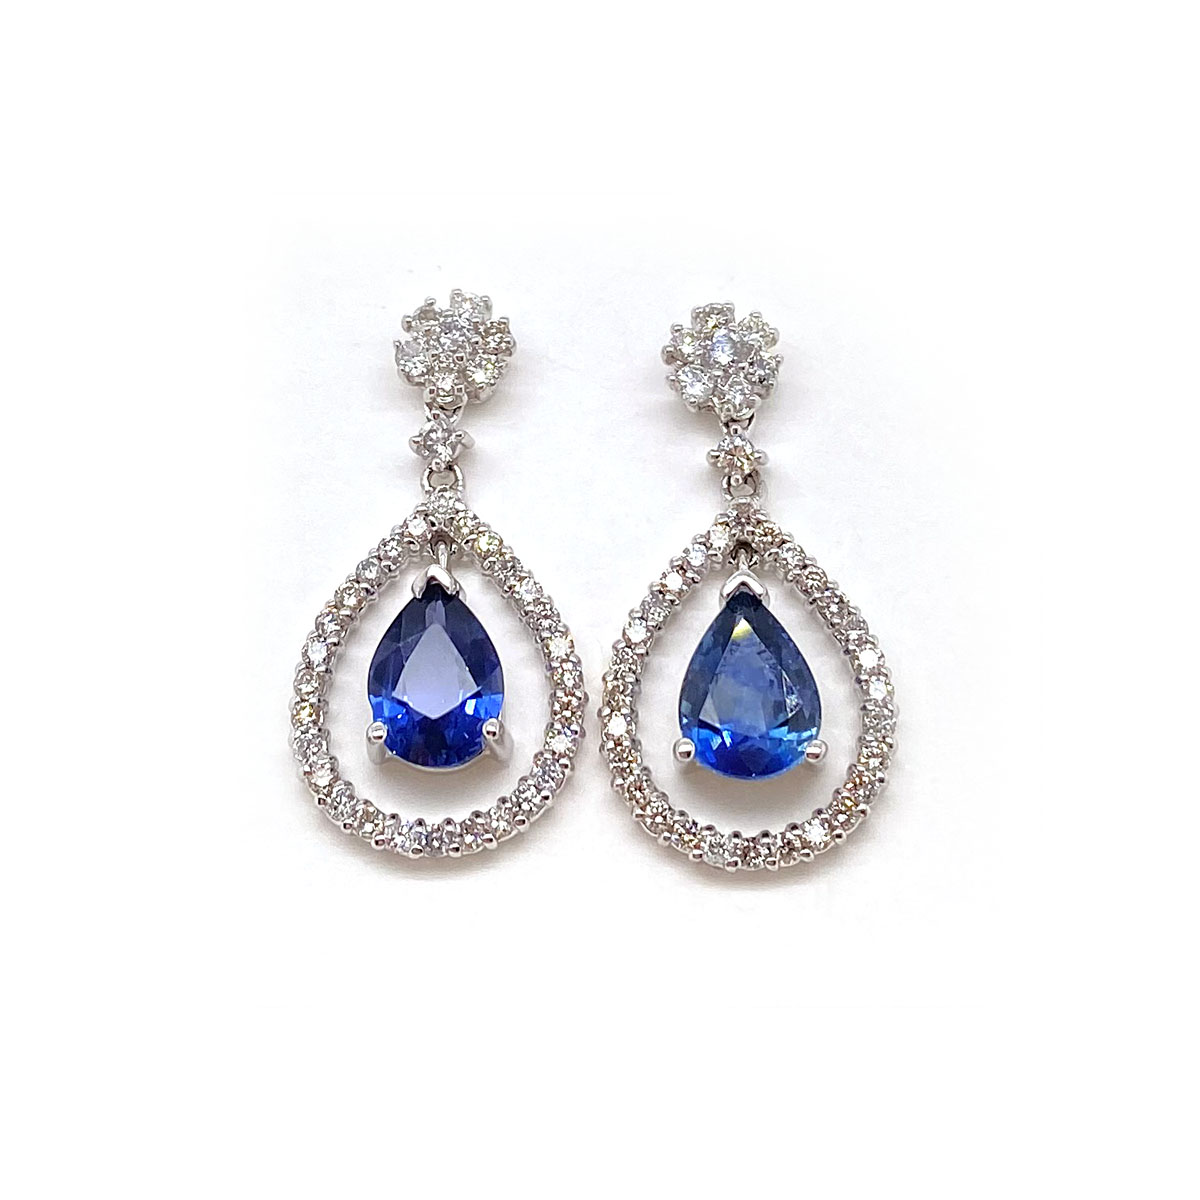 14 Karat White Gold Pear Shaped Blue Sapphire and Diamond Stud Earrings